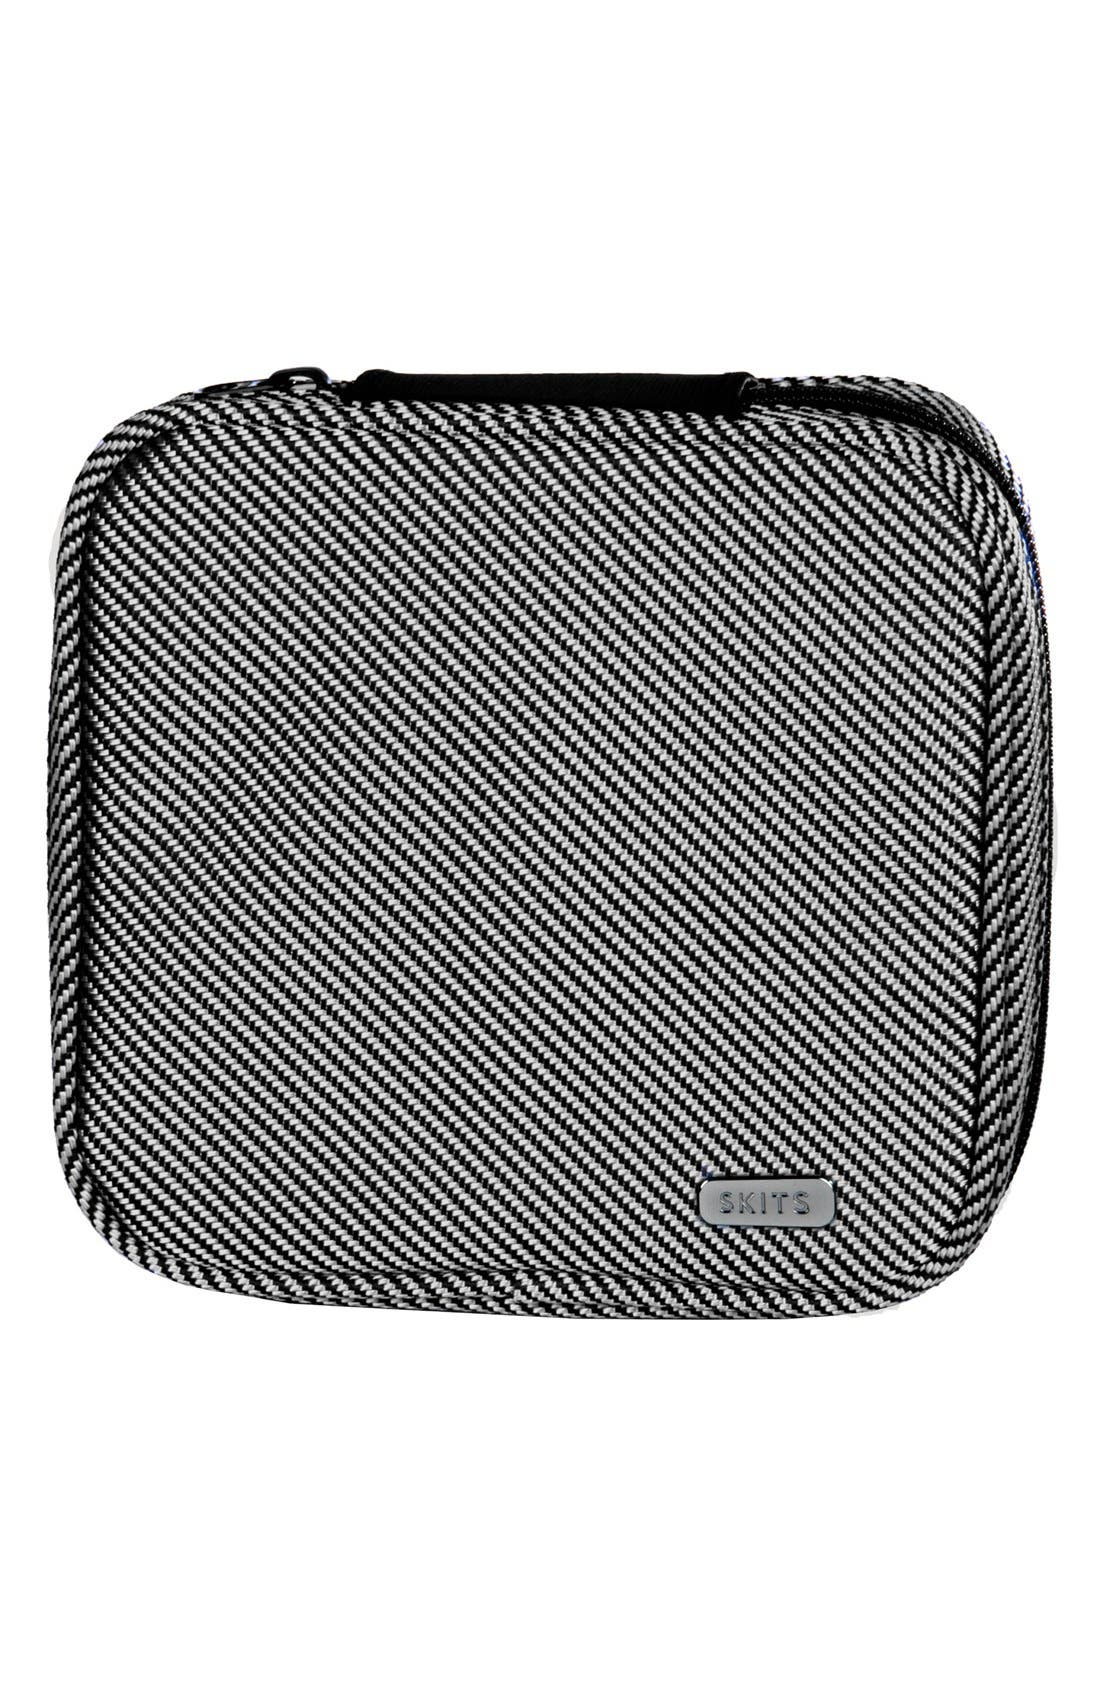 SKITS 'Smart' Carbon Stripe Tech Case